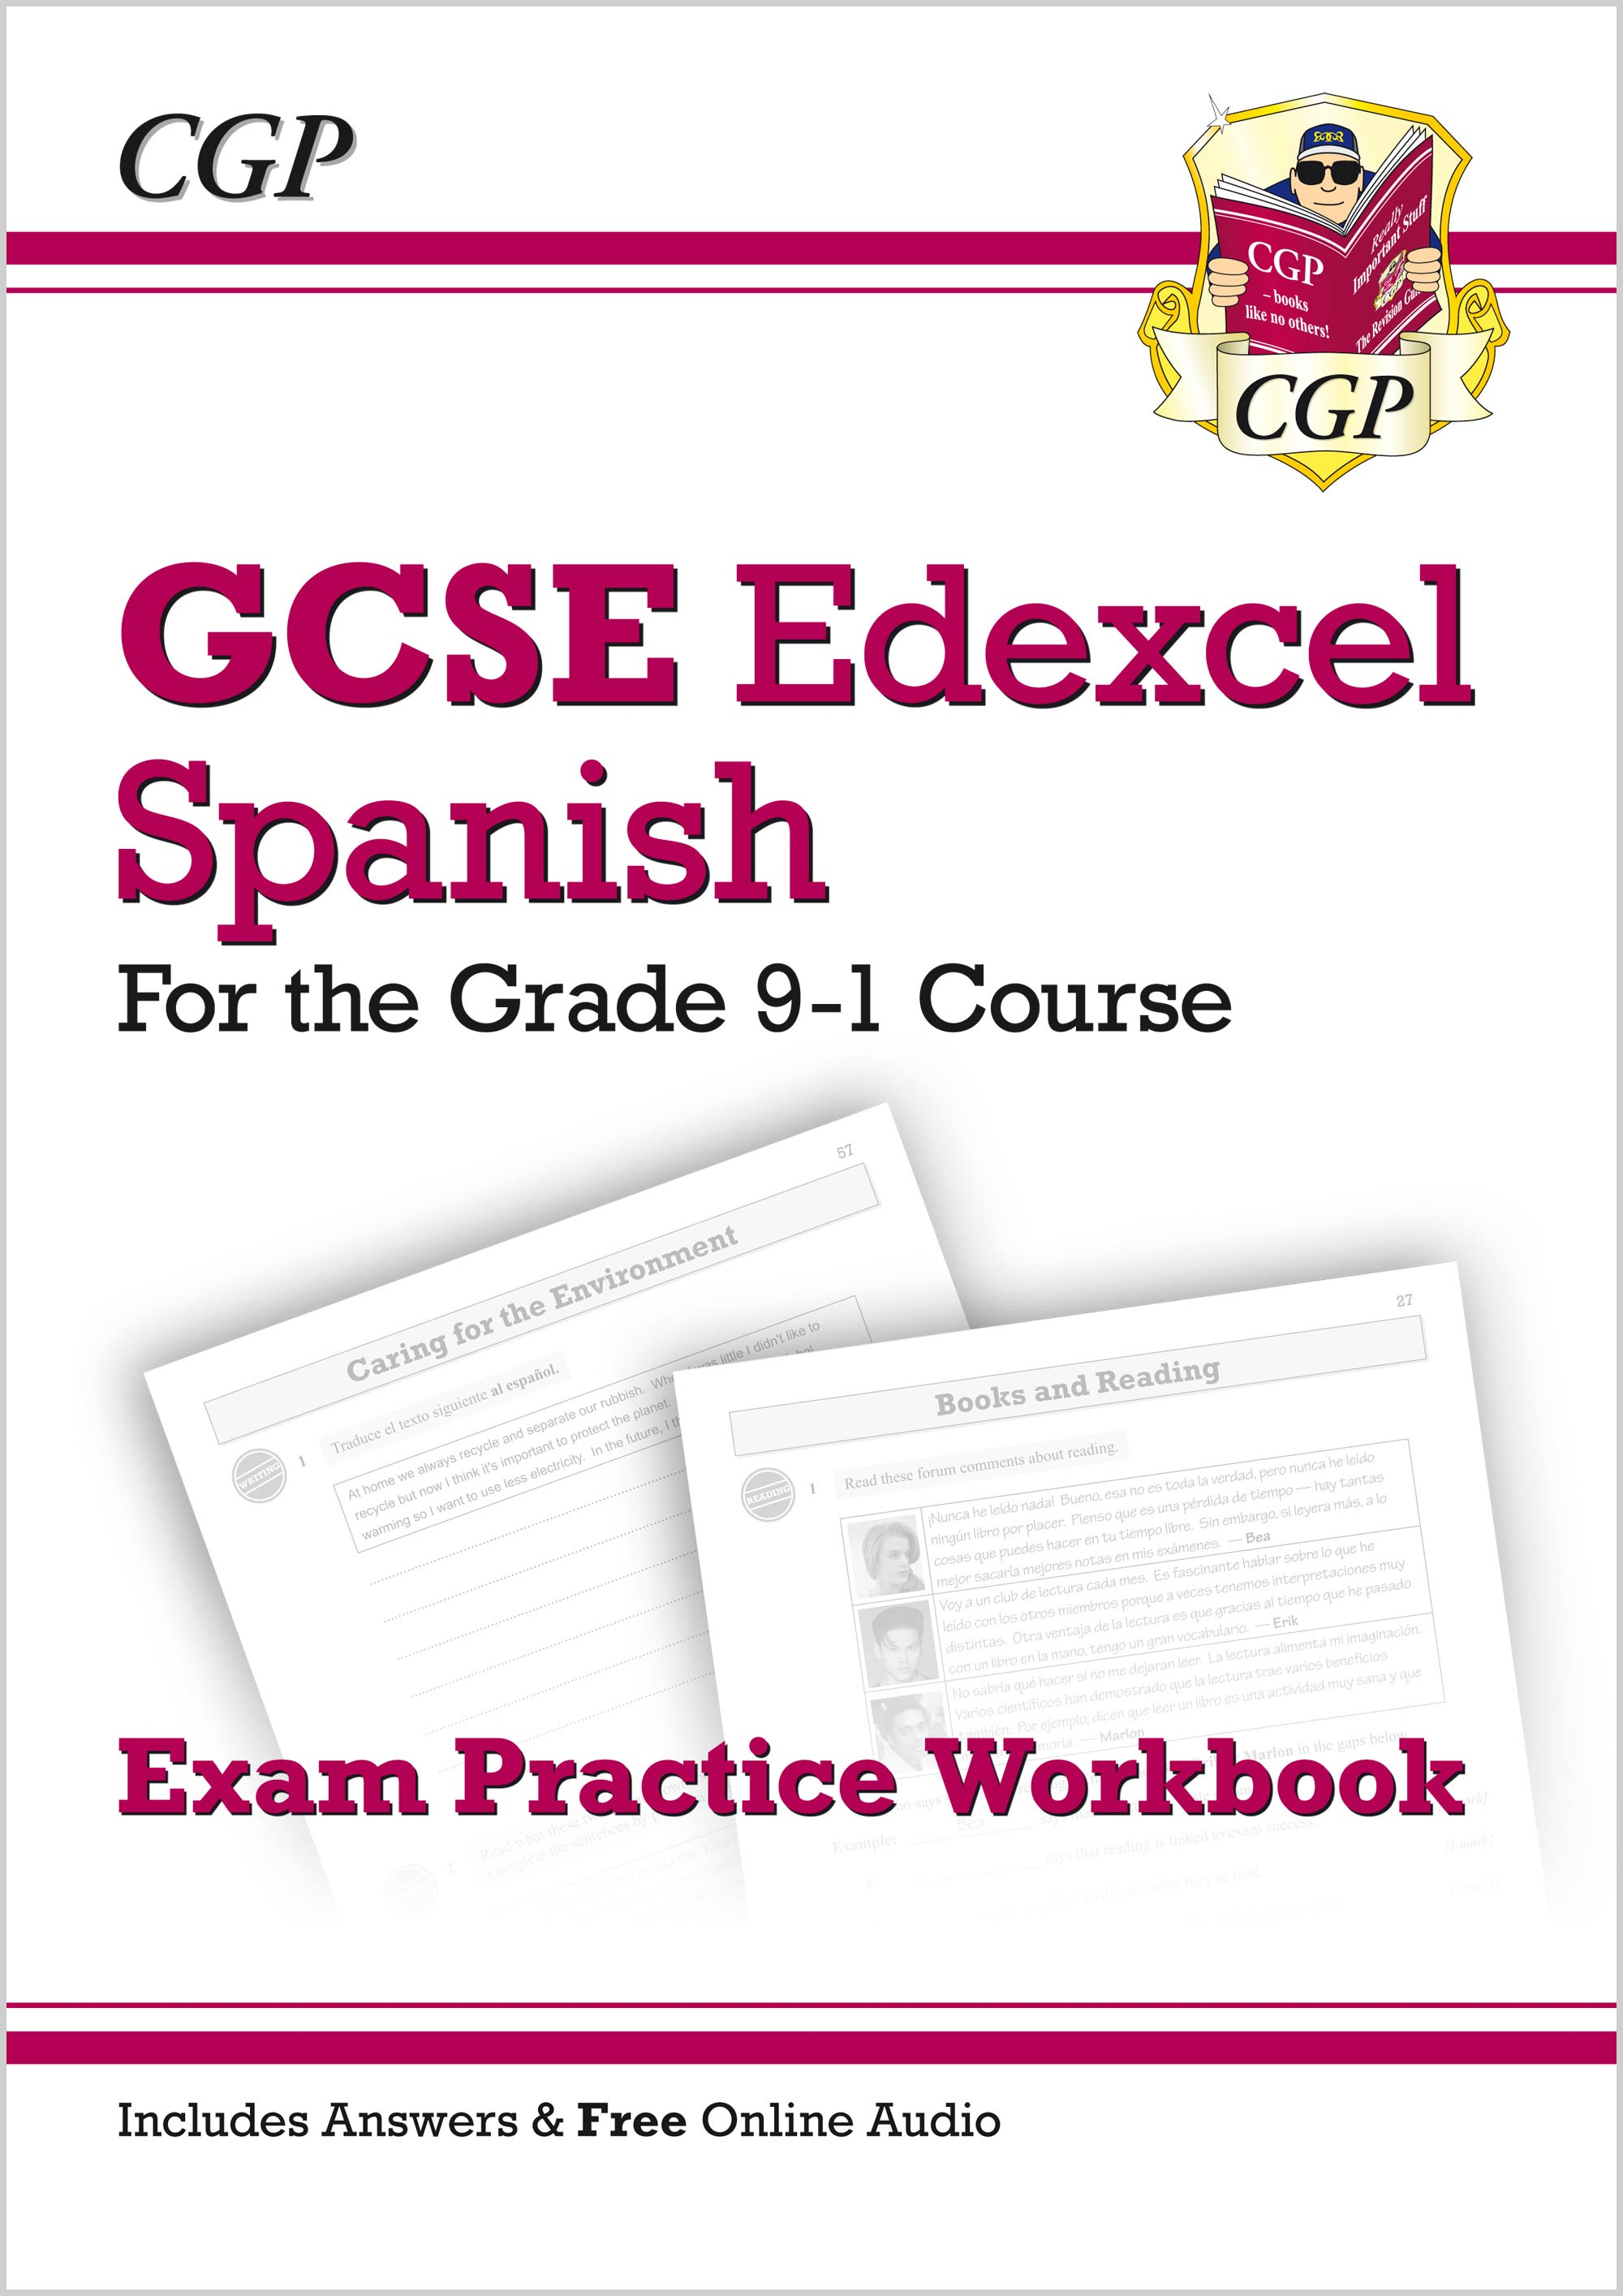 SPEQ41 - New GCSE Spanish Edexcel Exam Practice Workbook - for the Grade 9-1 Course (includes Answer